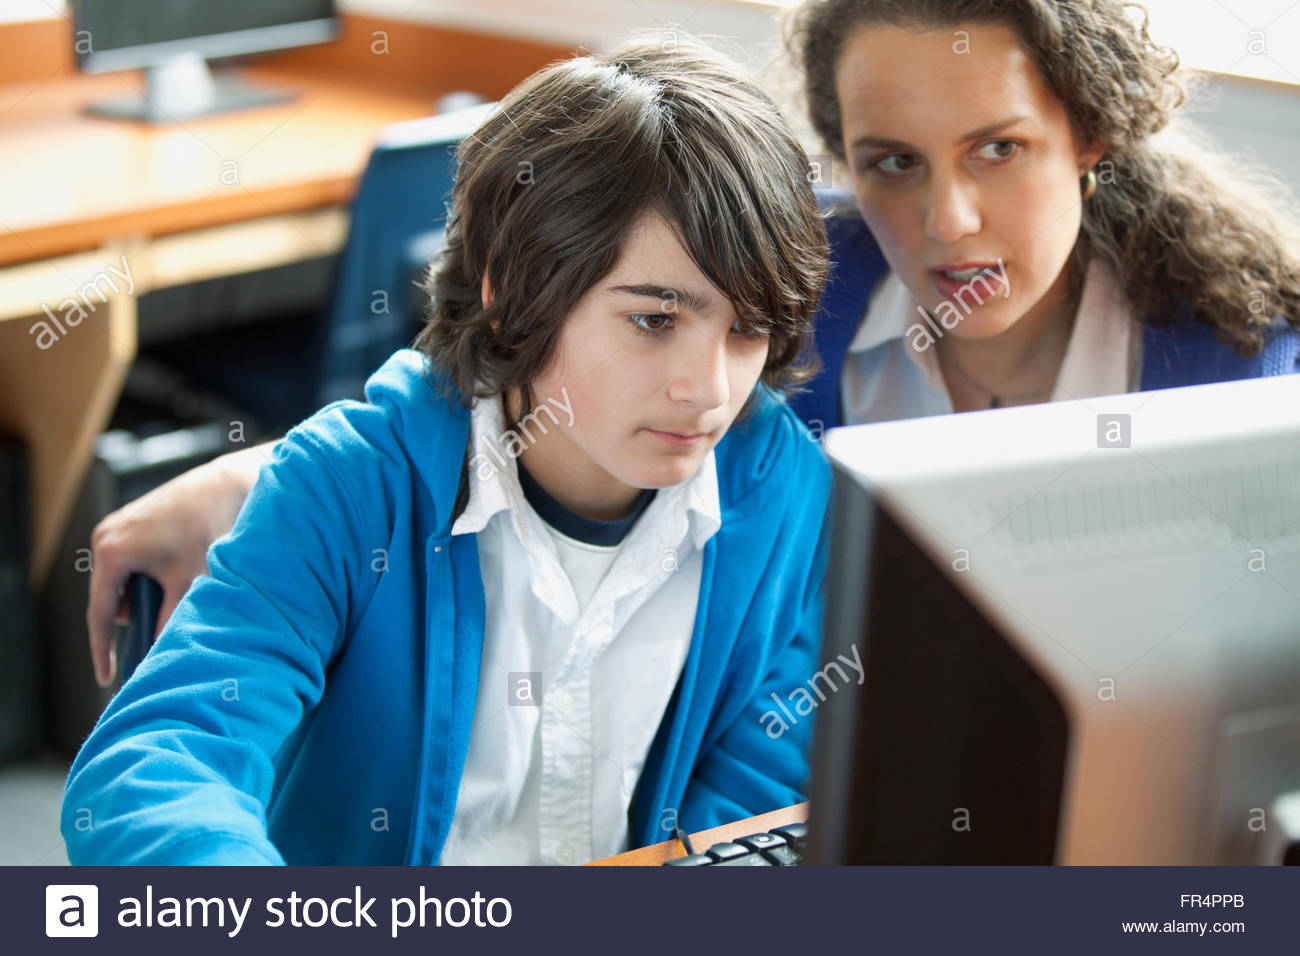 teacher assisting middle school student on computer - Stock Image